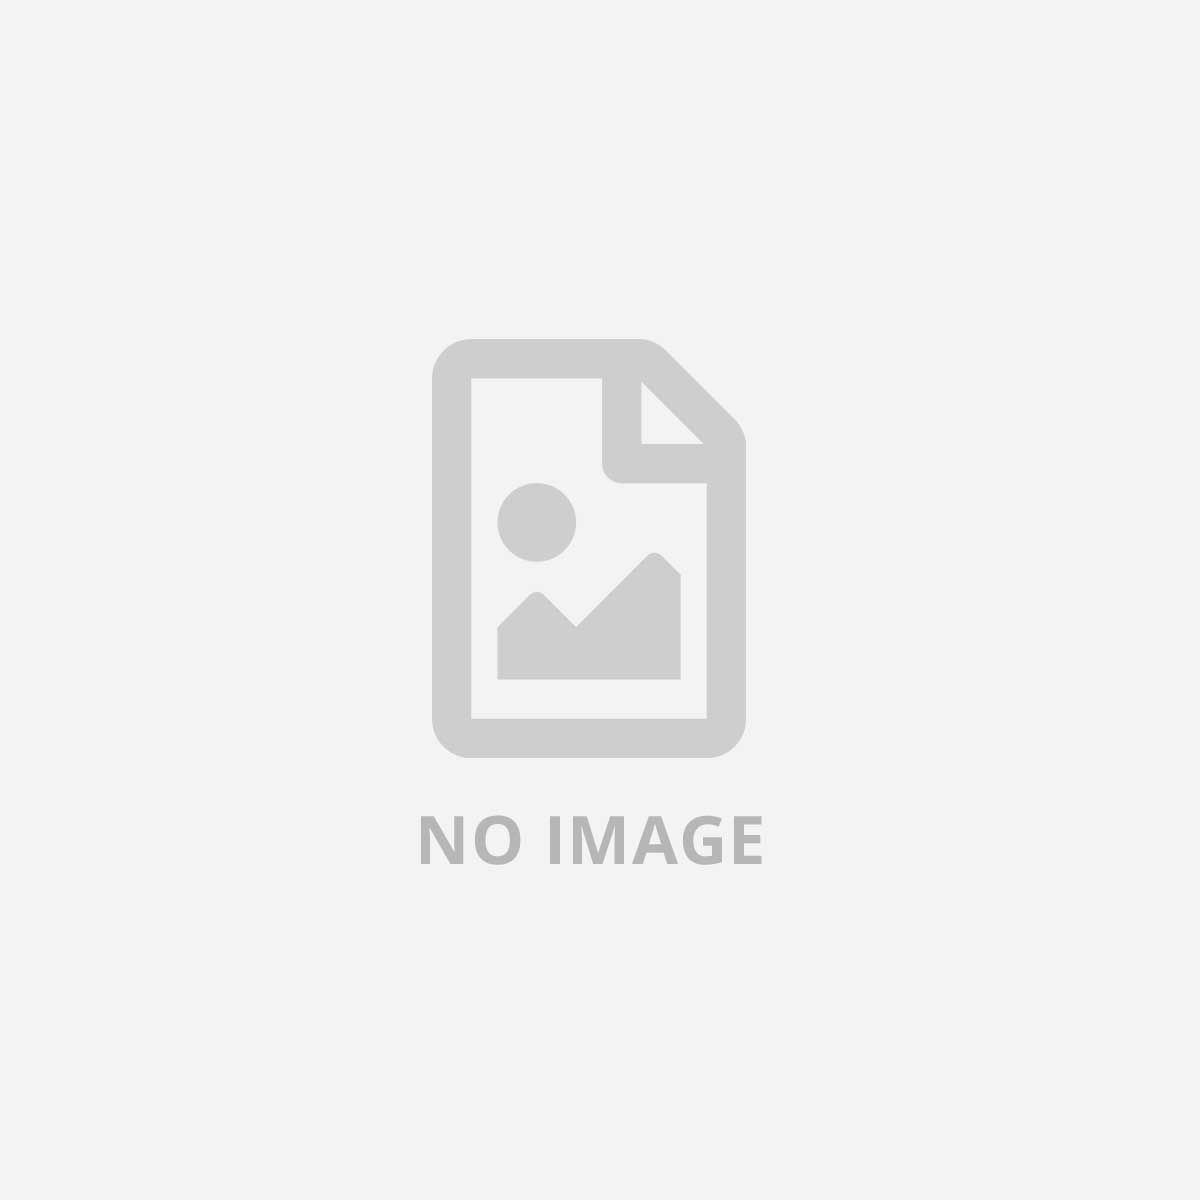 CONCEPTRONIC BOX HDD 2 5  USB 3.0